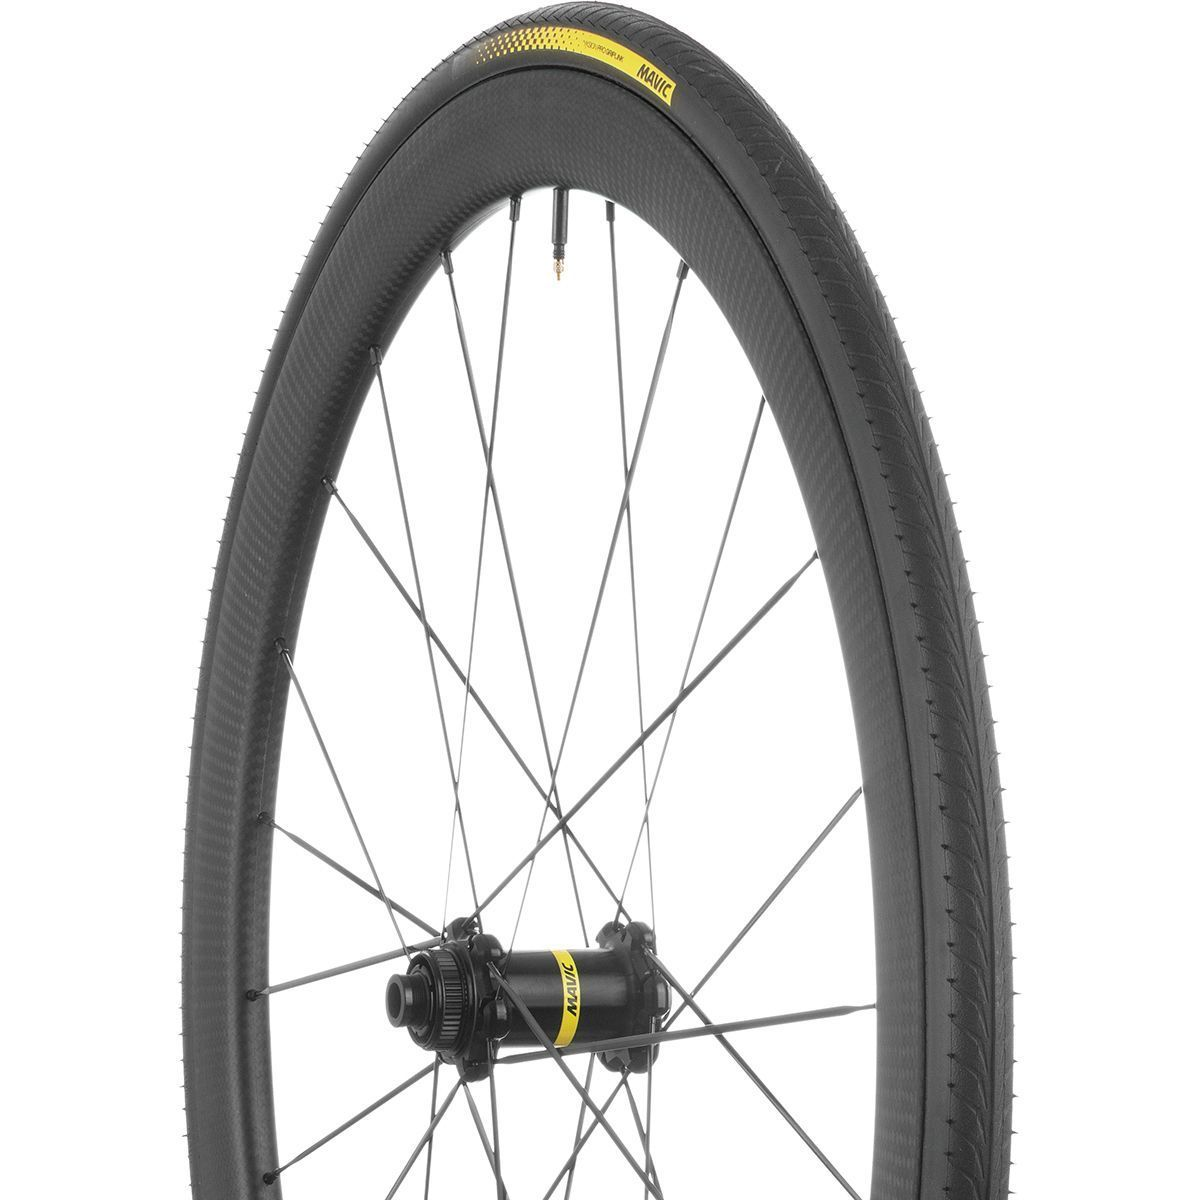 Mavic Cosmic Pro Carbon SL Disc Wheelset Clincher Fade Decal CL 12x100 12x142mm Shimano SRAM 11-Speed